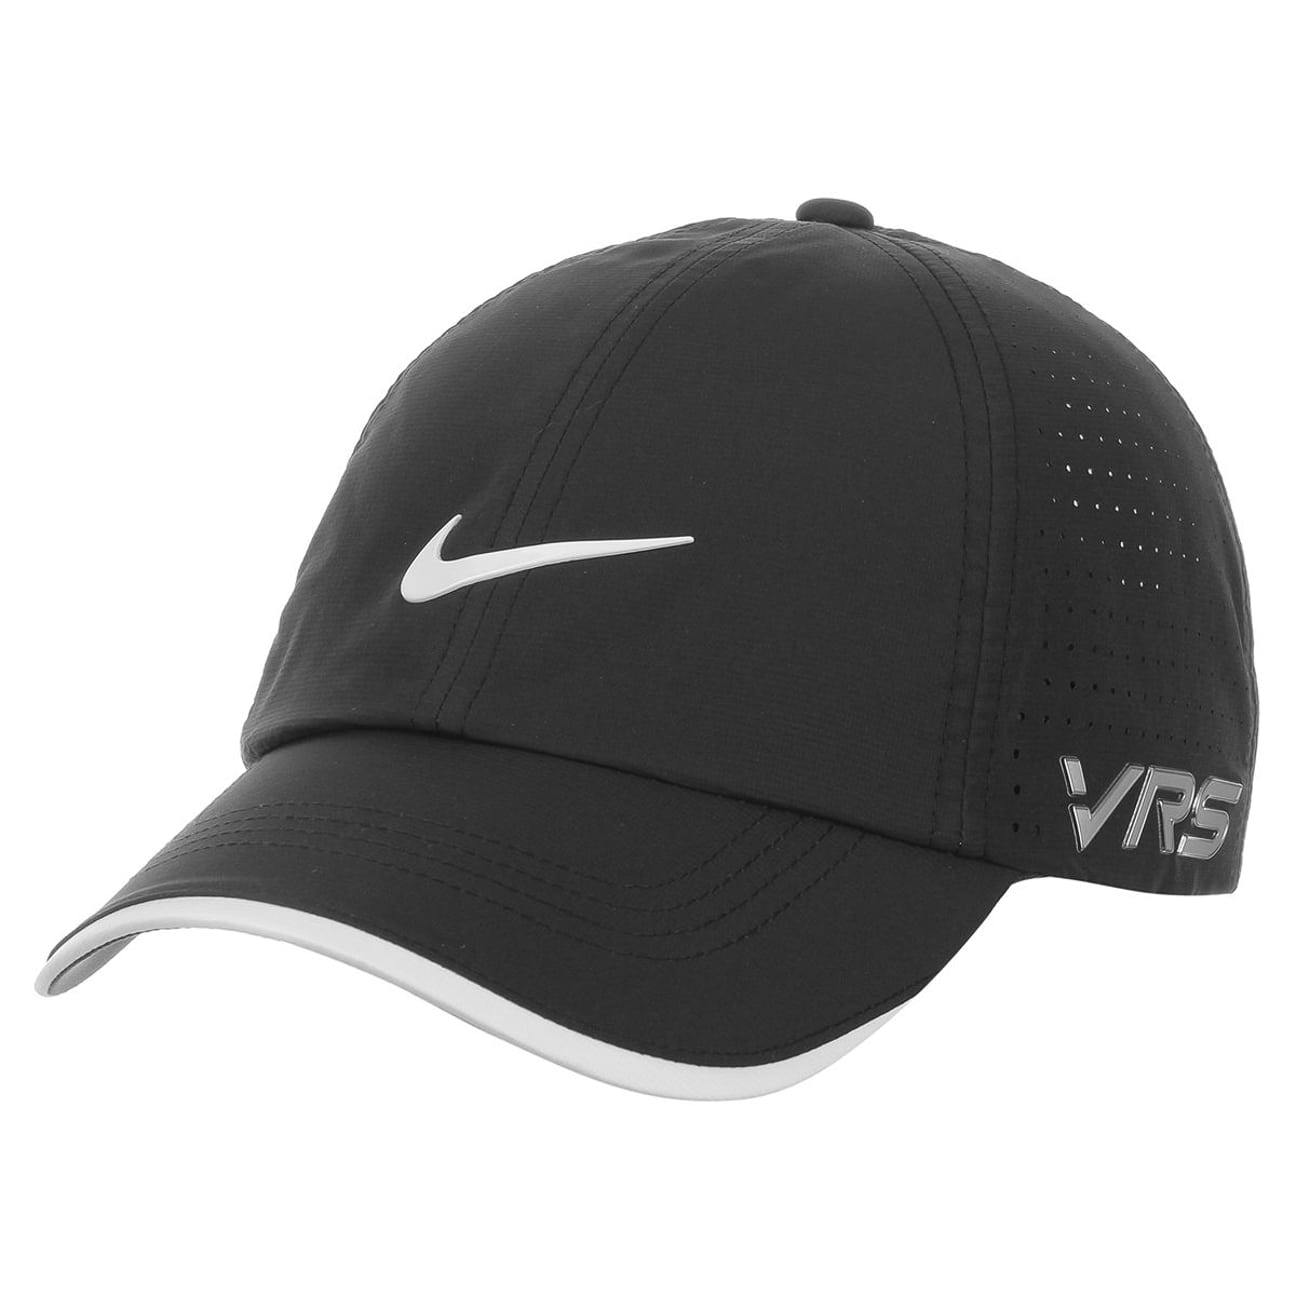 9a35b69100f New Tour Perforated Golf Cap by Nike - 27